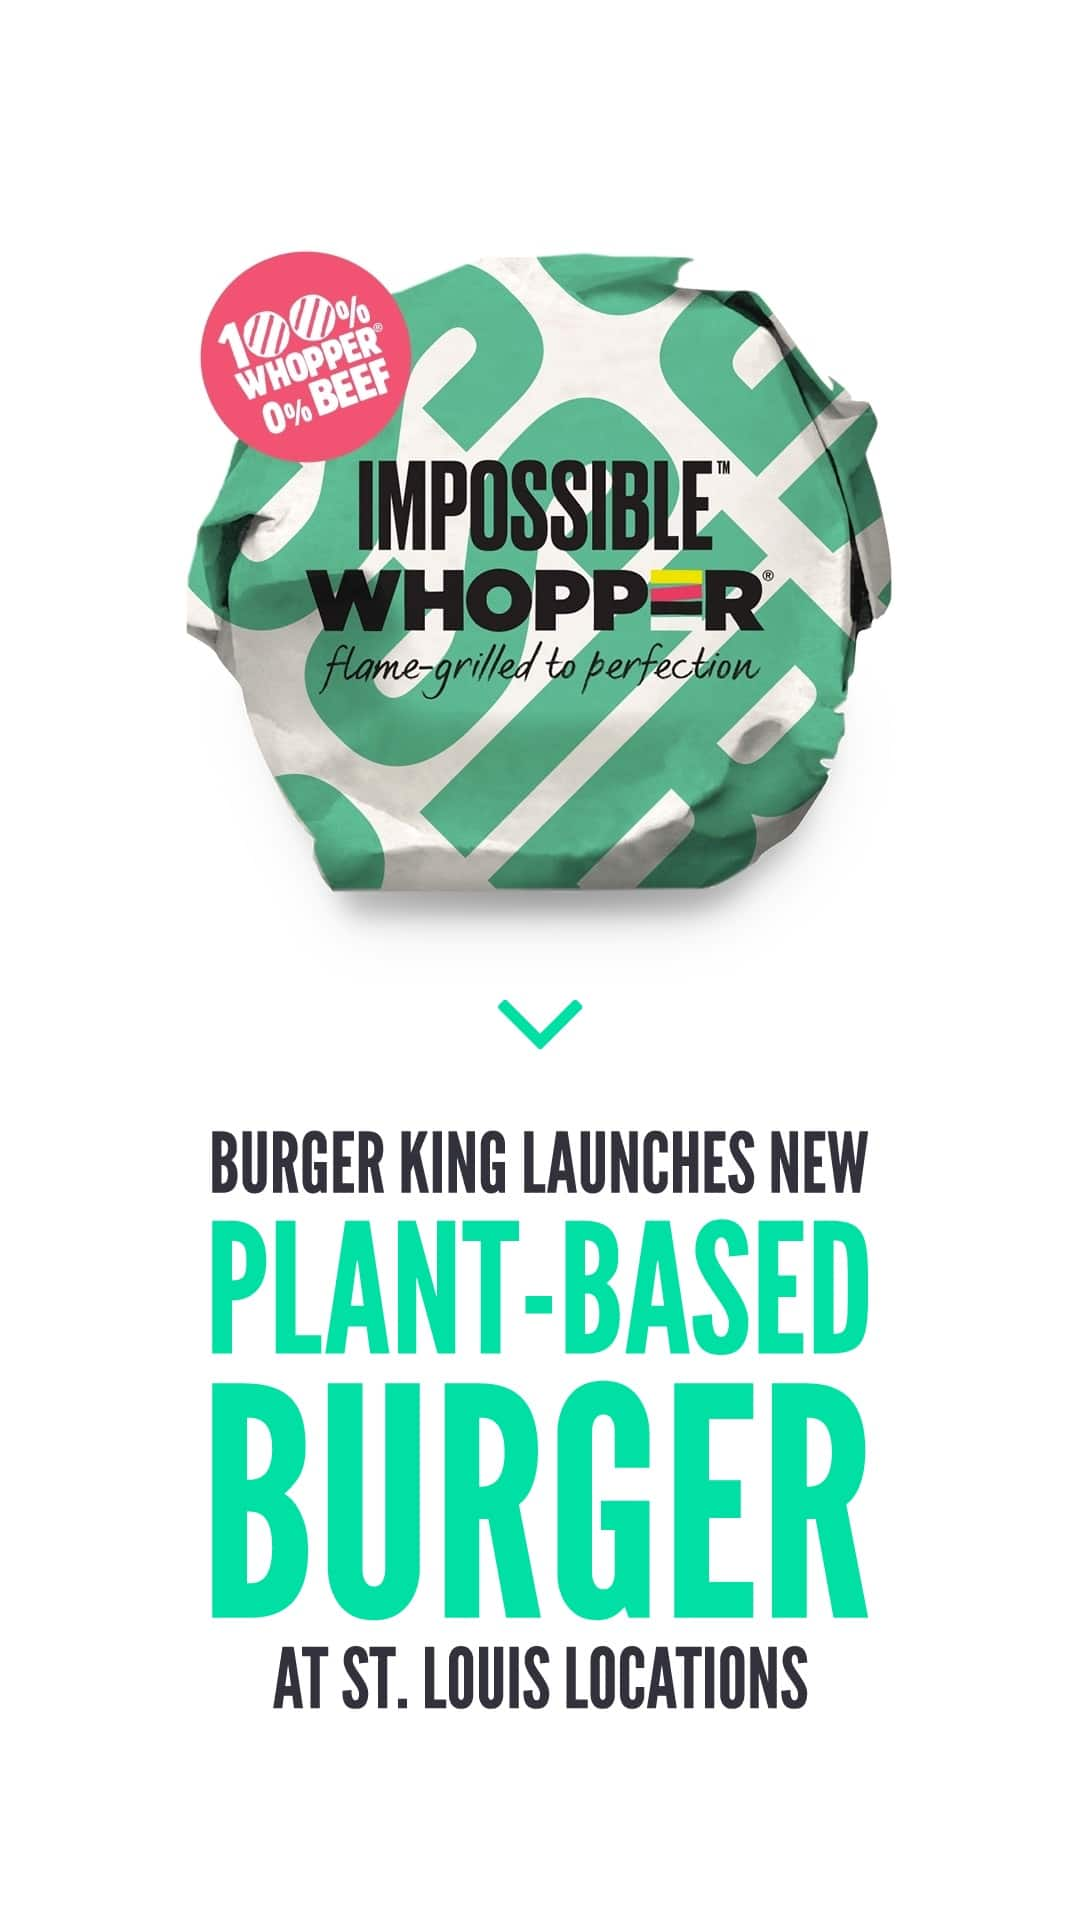 Burger King Launches New Plant-Based Burger at St. Louis Locations